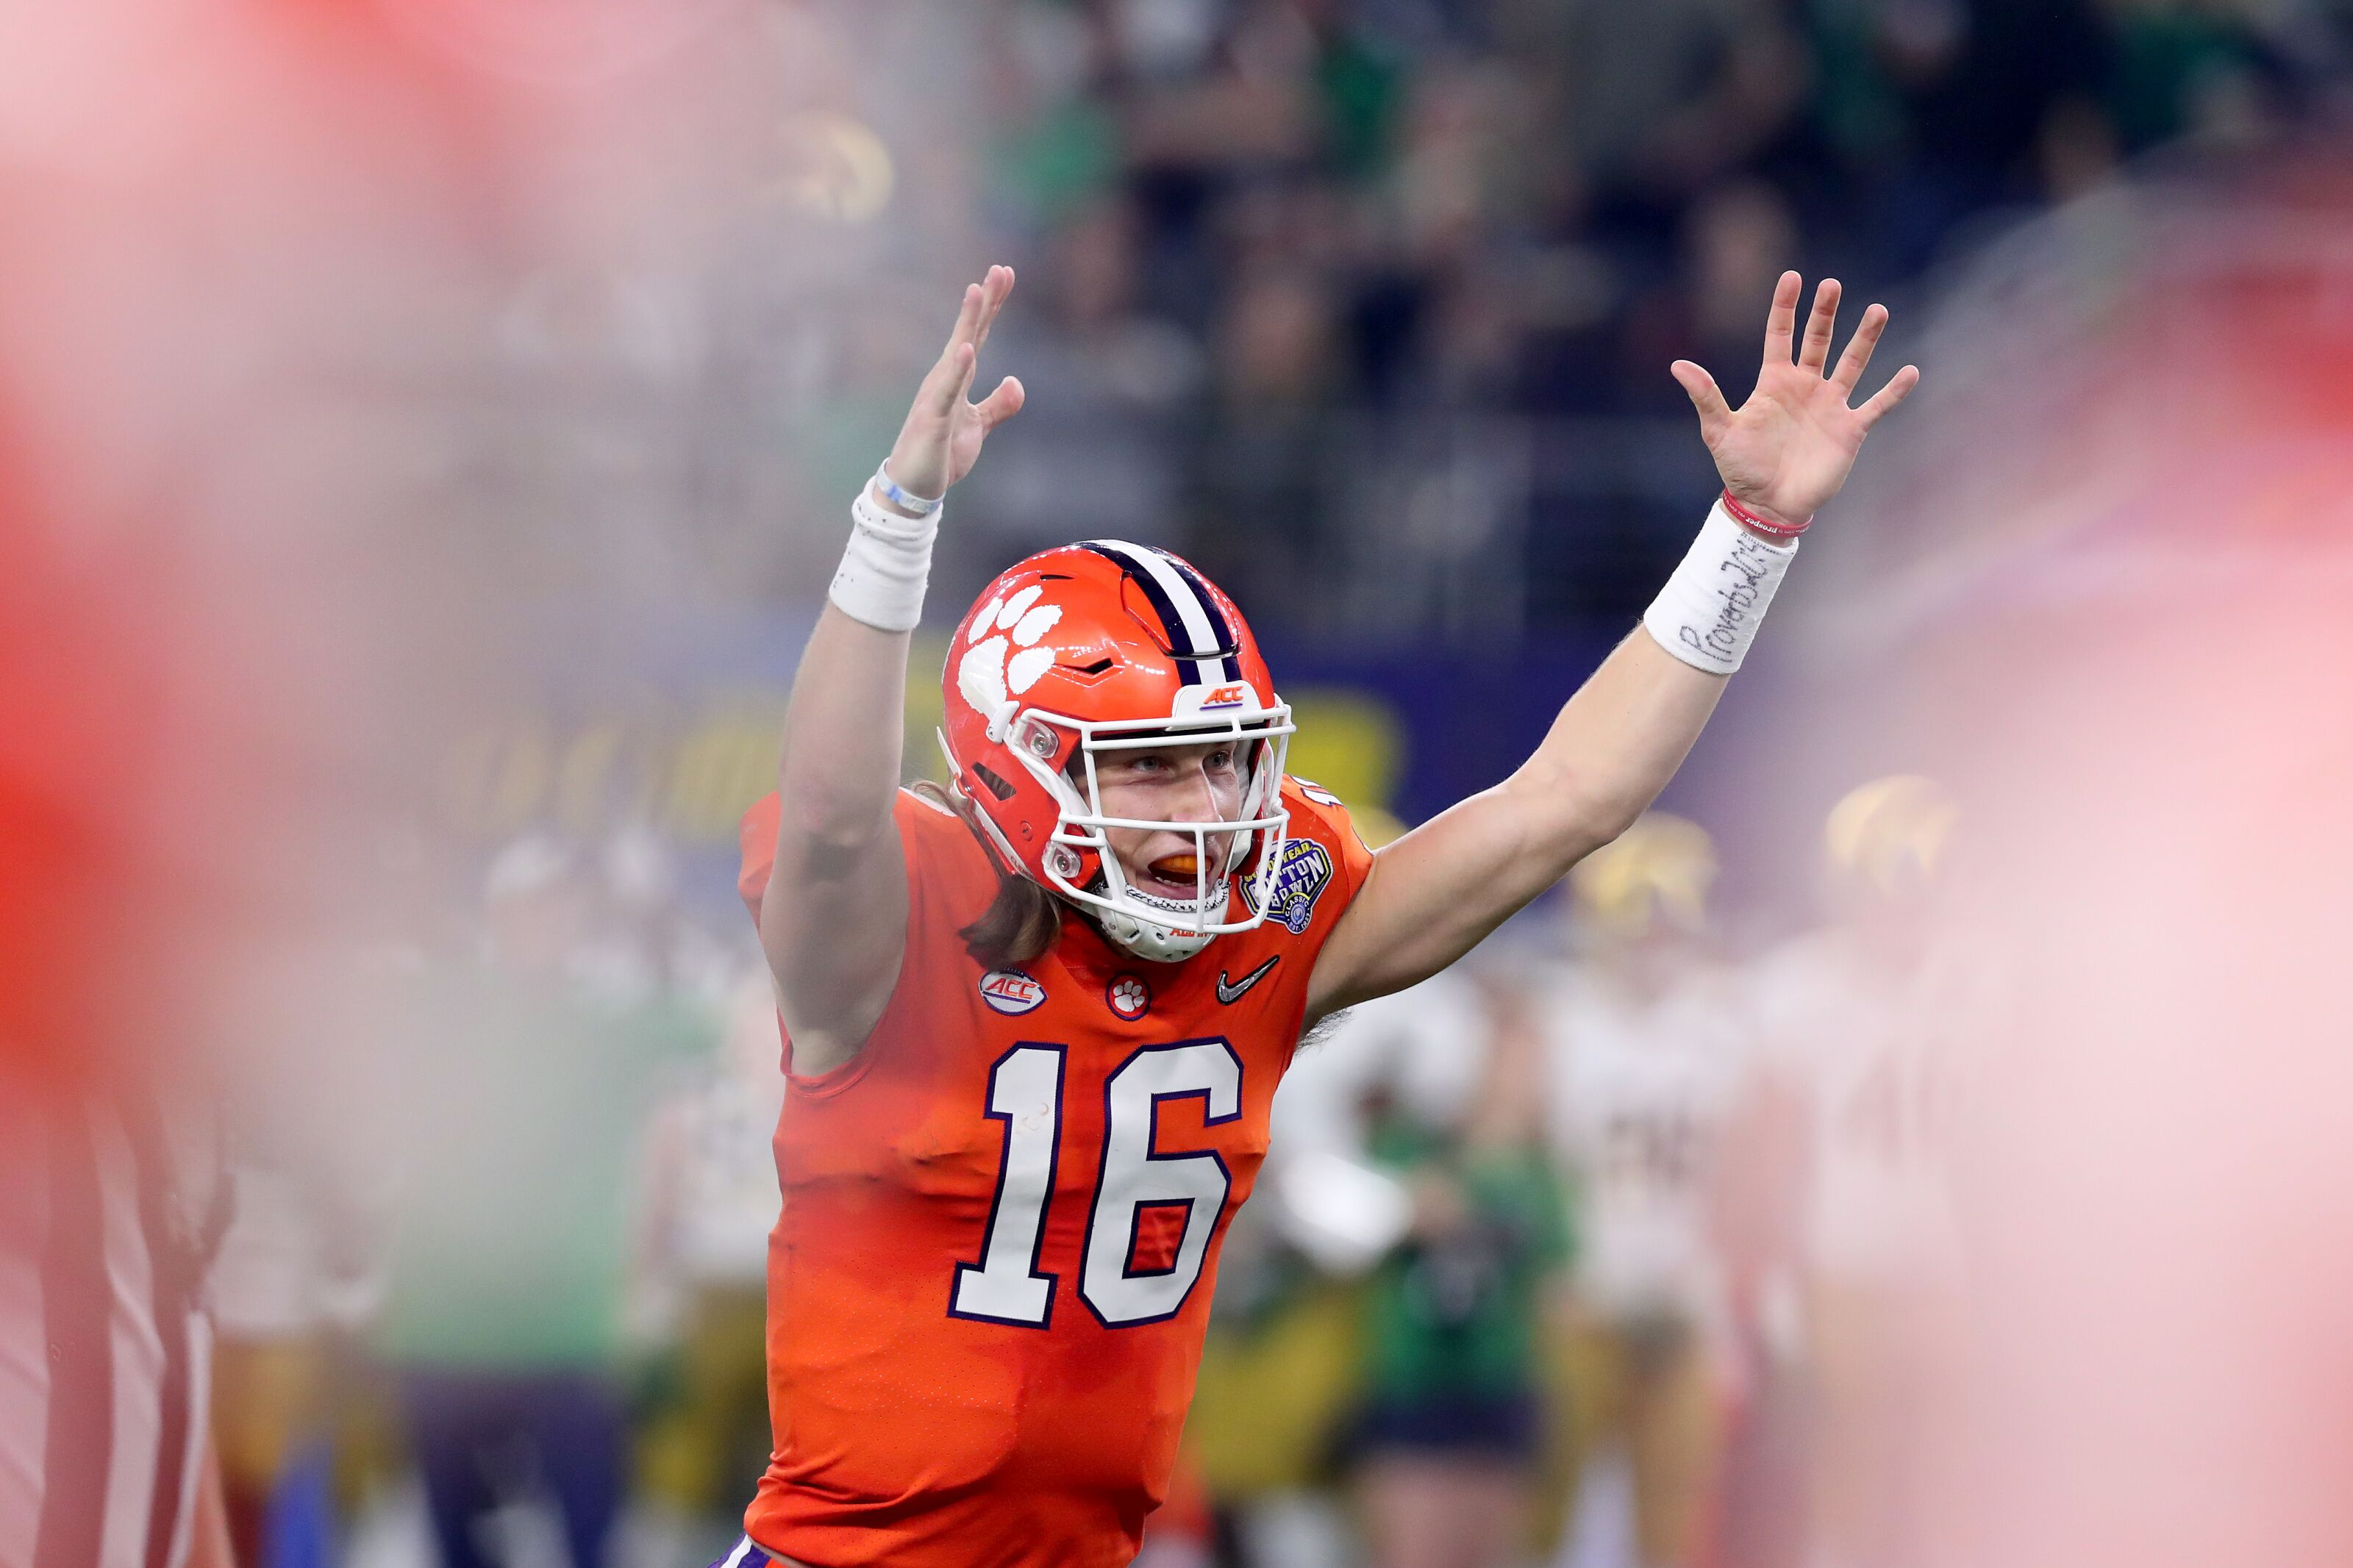 Clemson Football: A way-too-early look at the 2020 Tiger team